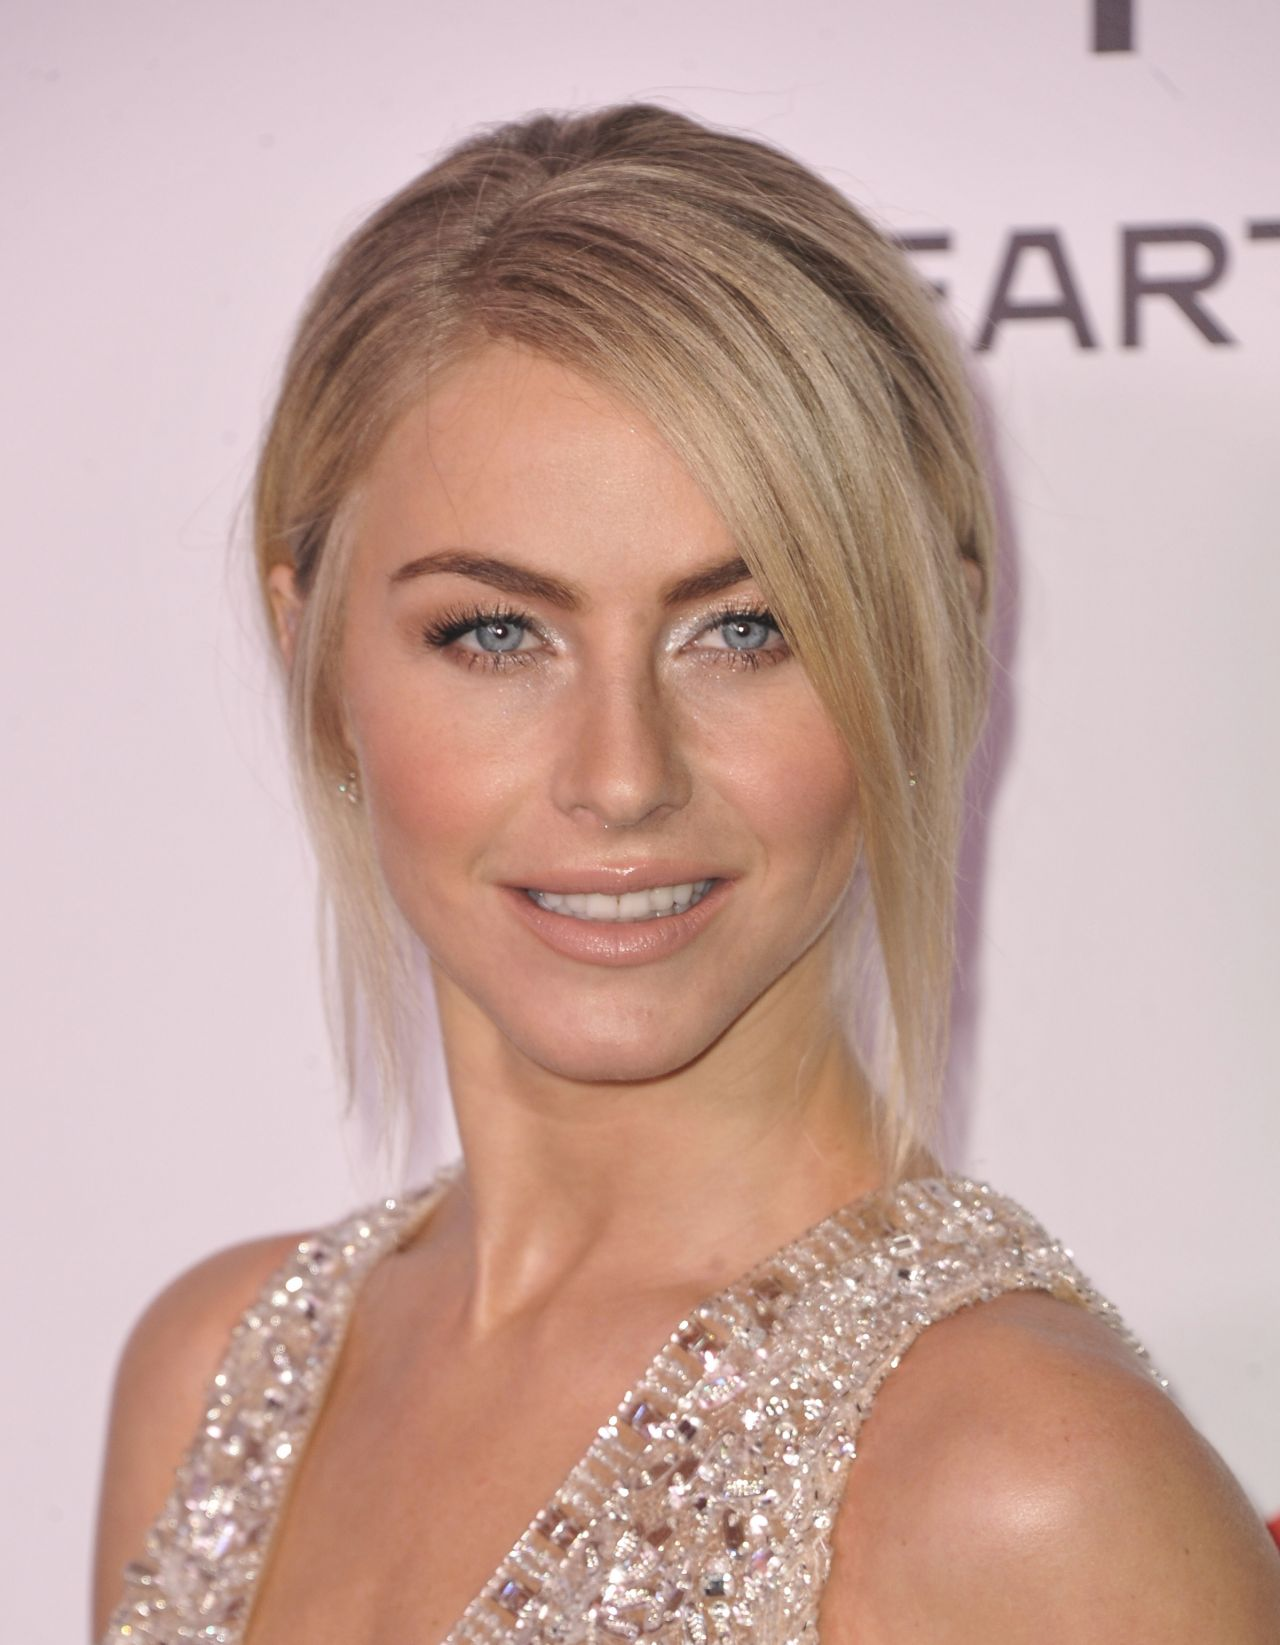 Julianne Hough nudes (45 photos) Fappening, iCloud, cleavage